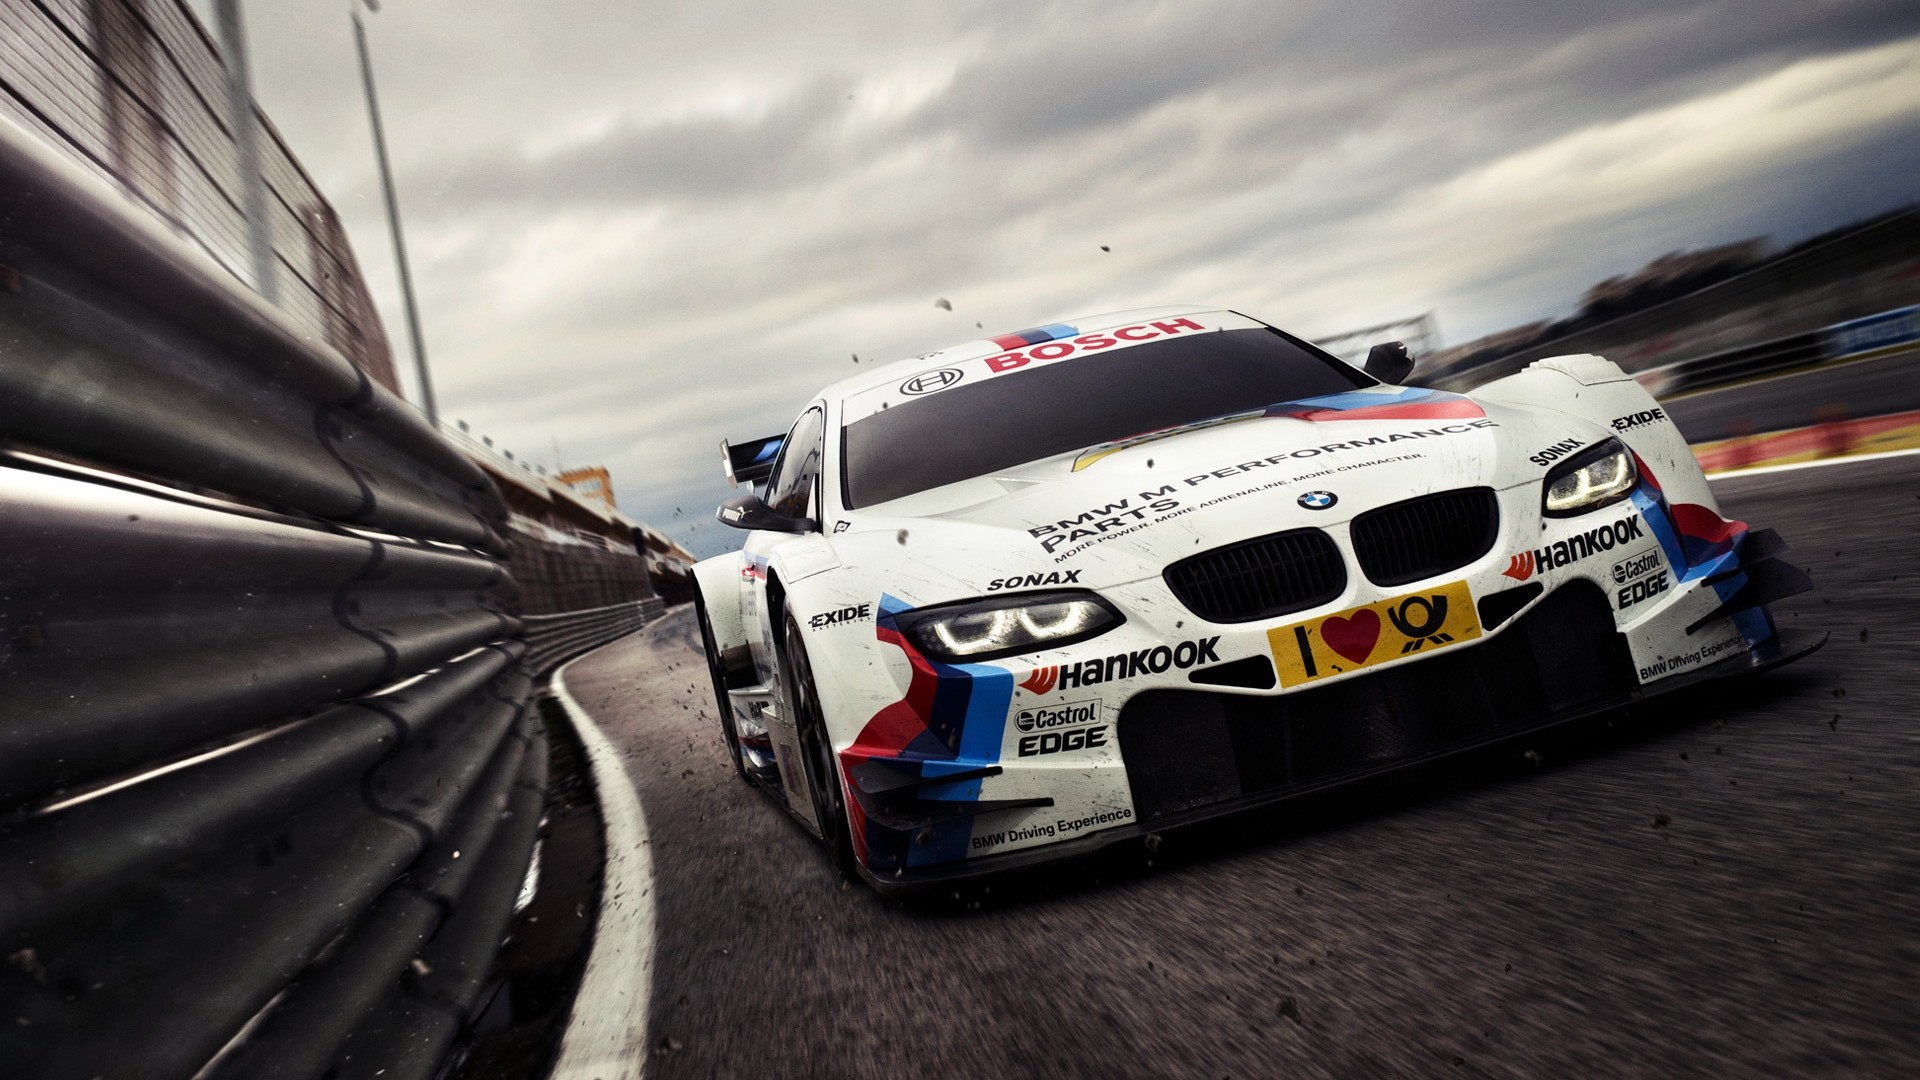 BMW-M-DTM-wallpaper-wp3601023